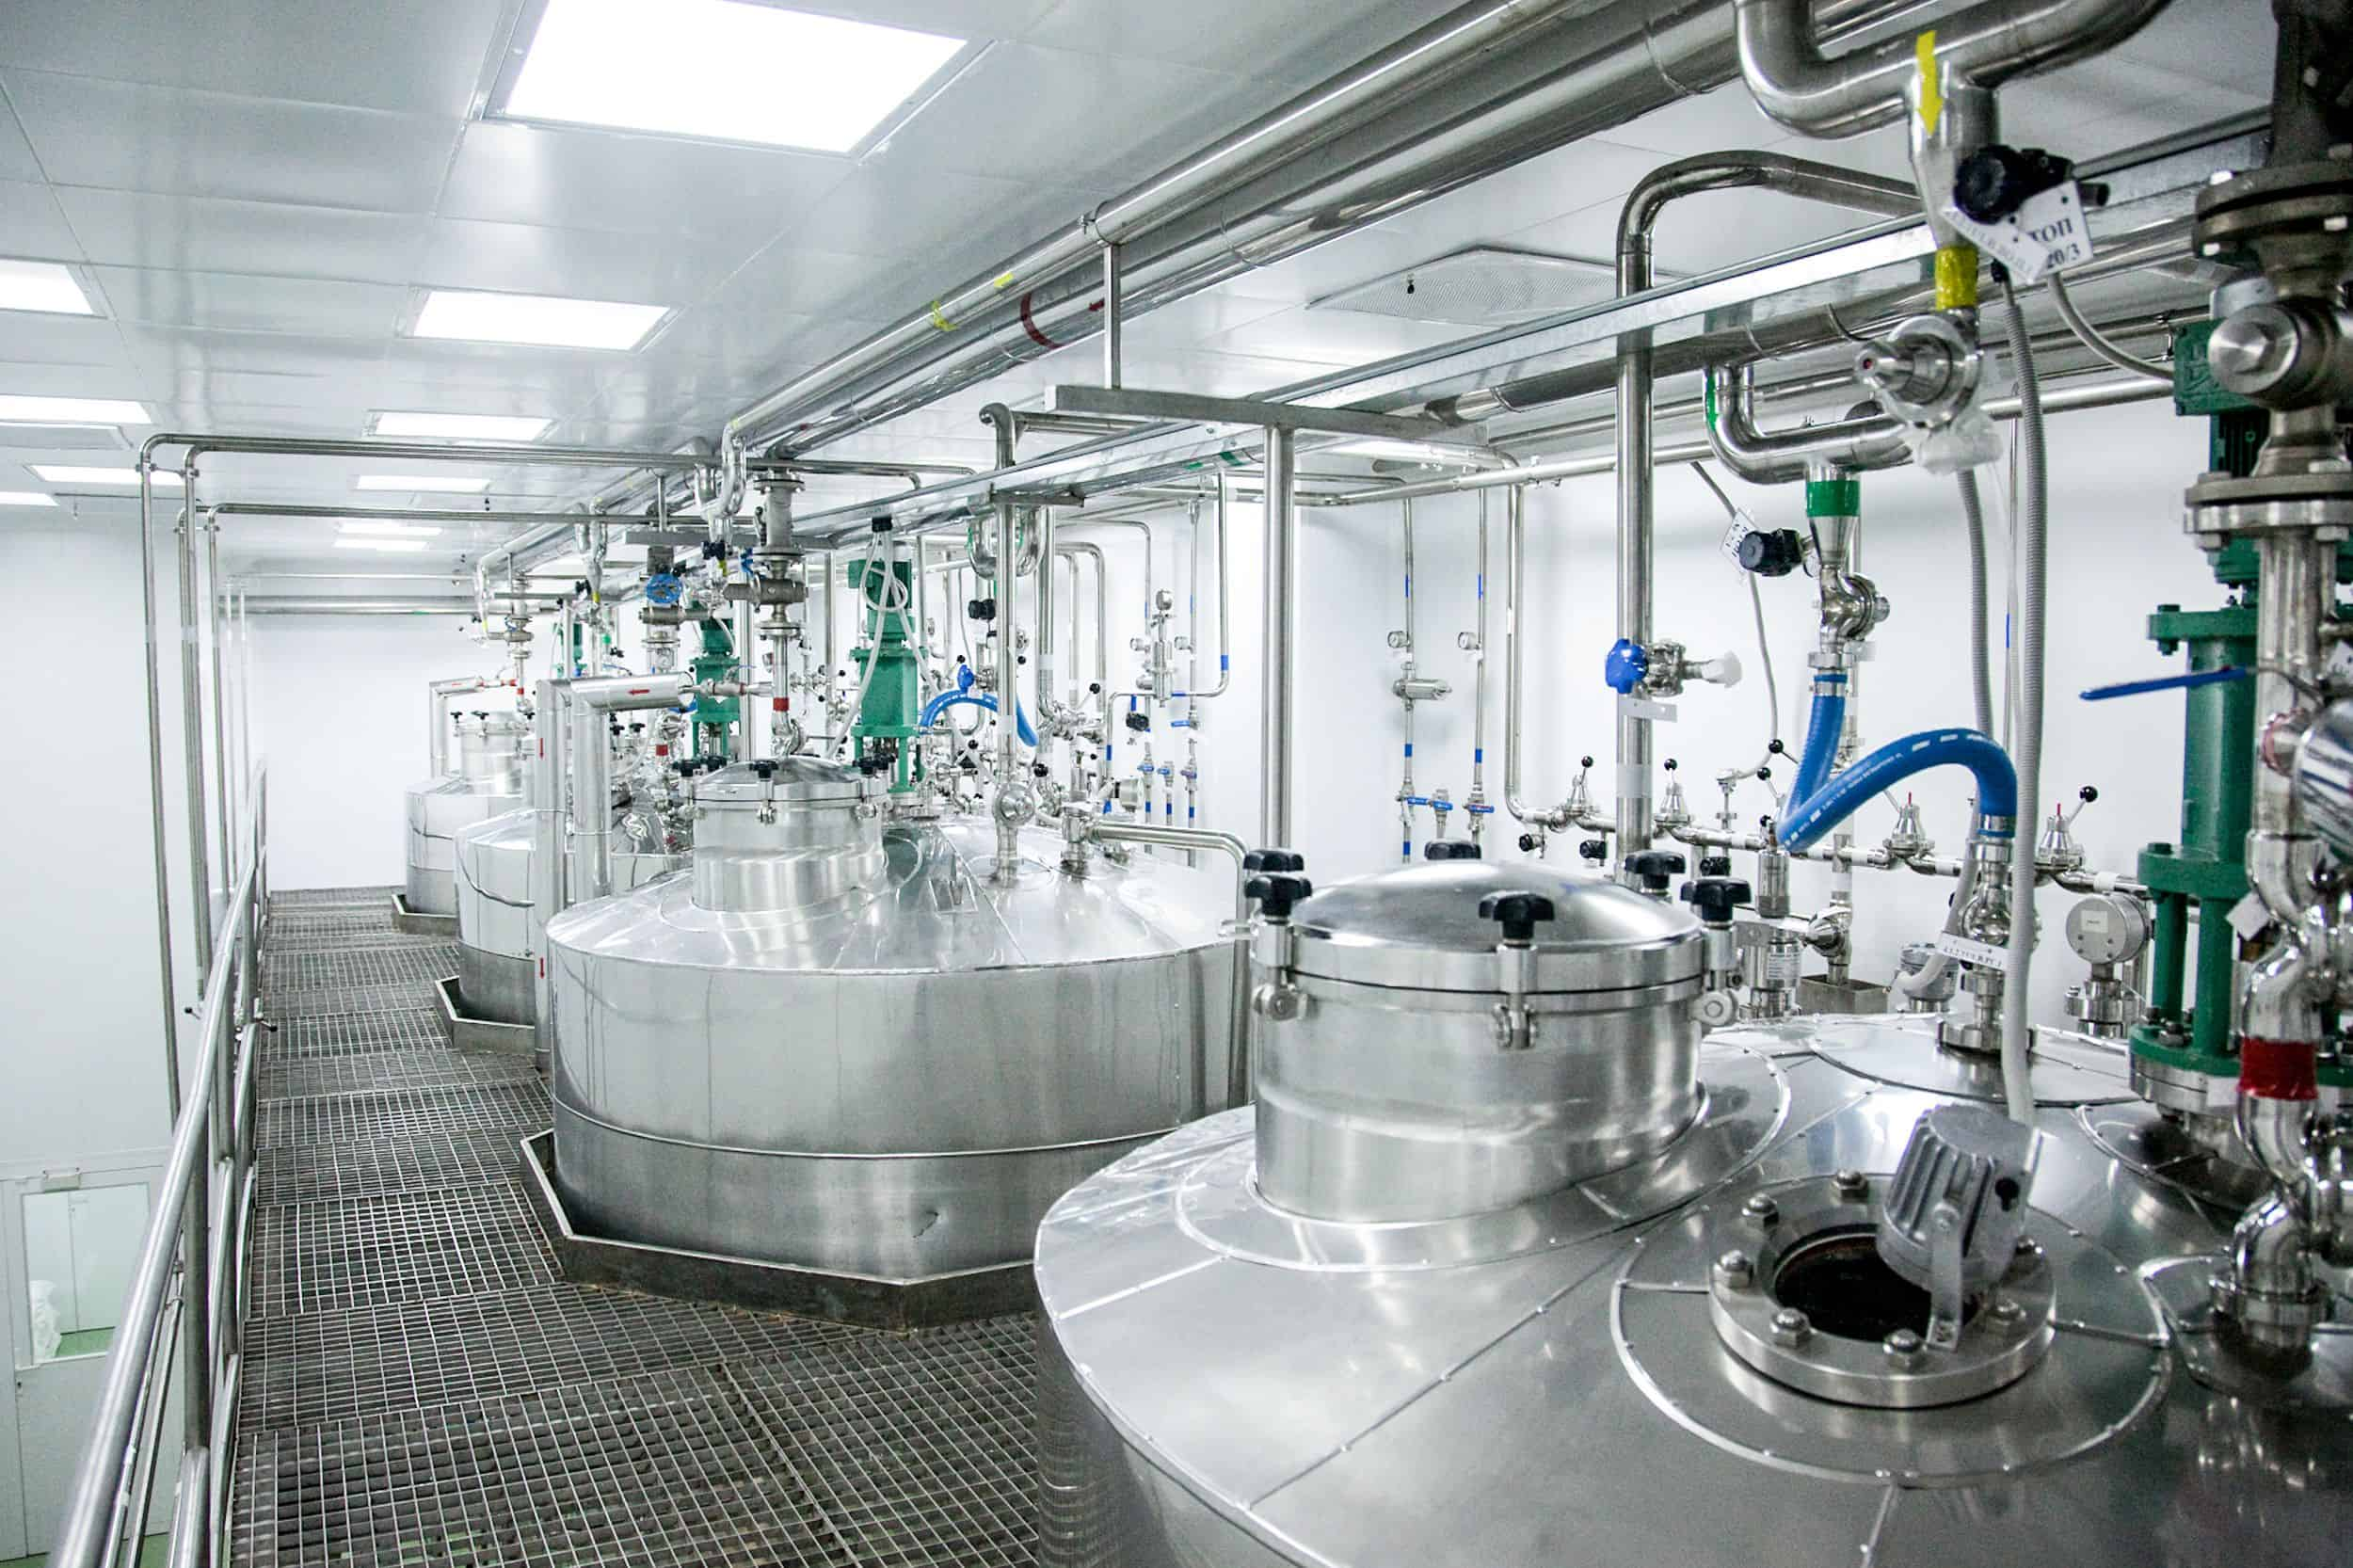 Pressure vessels in pharmaceutical processing plant